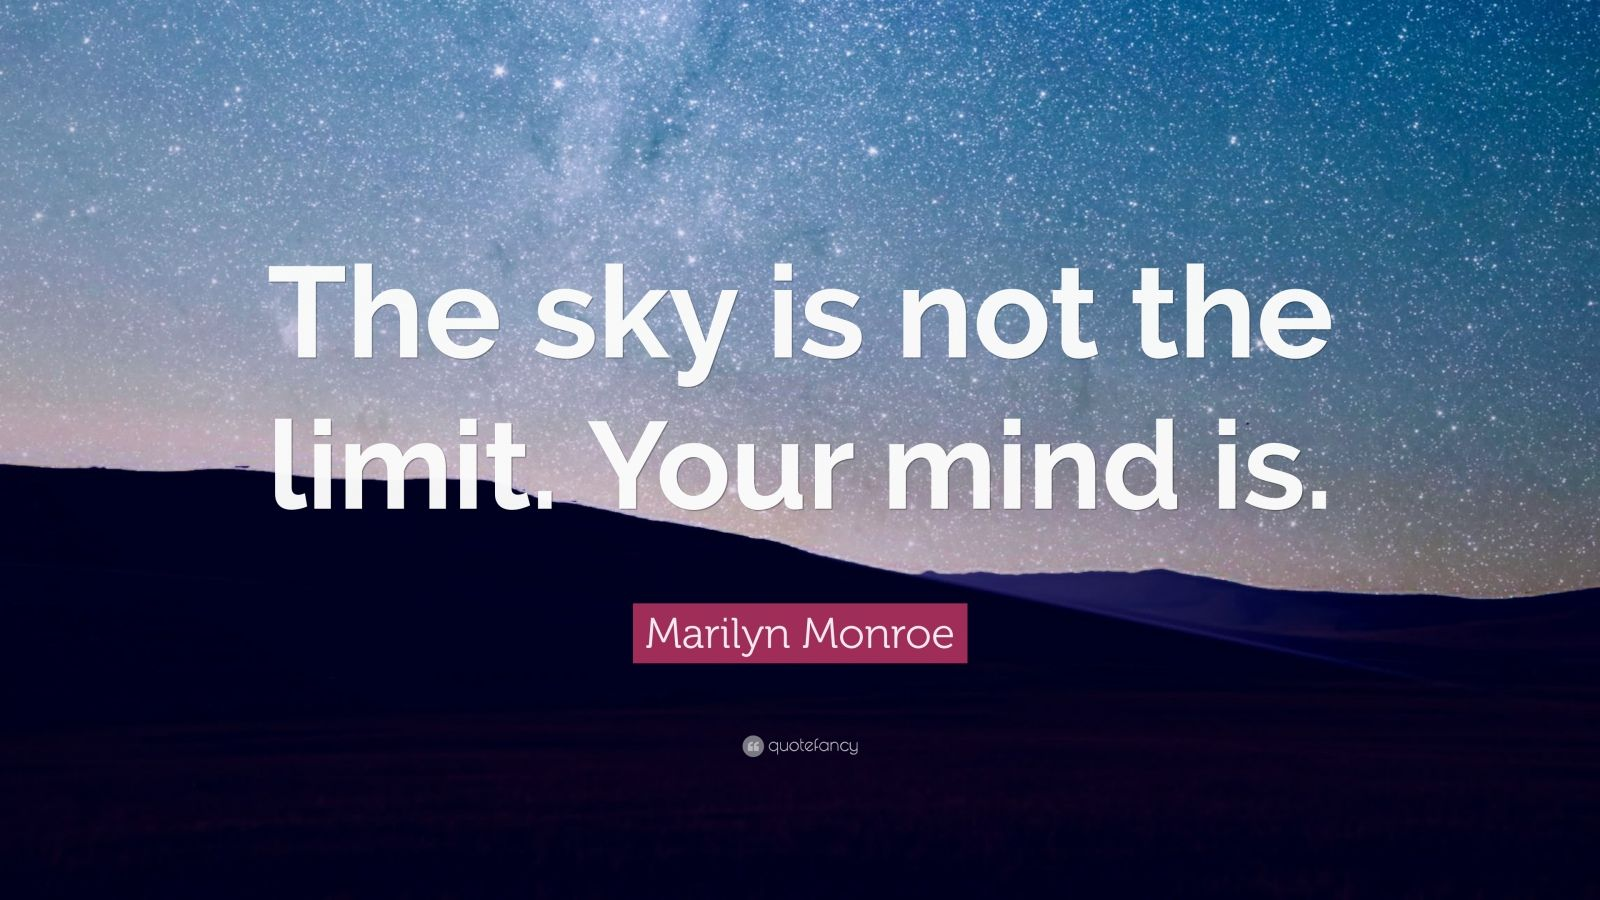 Civil Engineering Quotes Wallpapers Marilyn Monroe Quote The Sky Is Not The Limit Your Mind